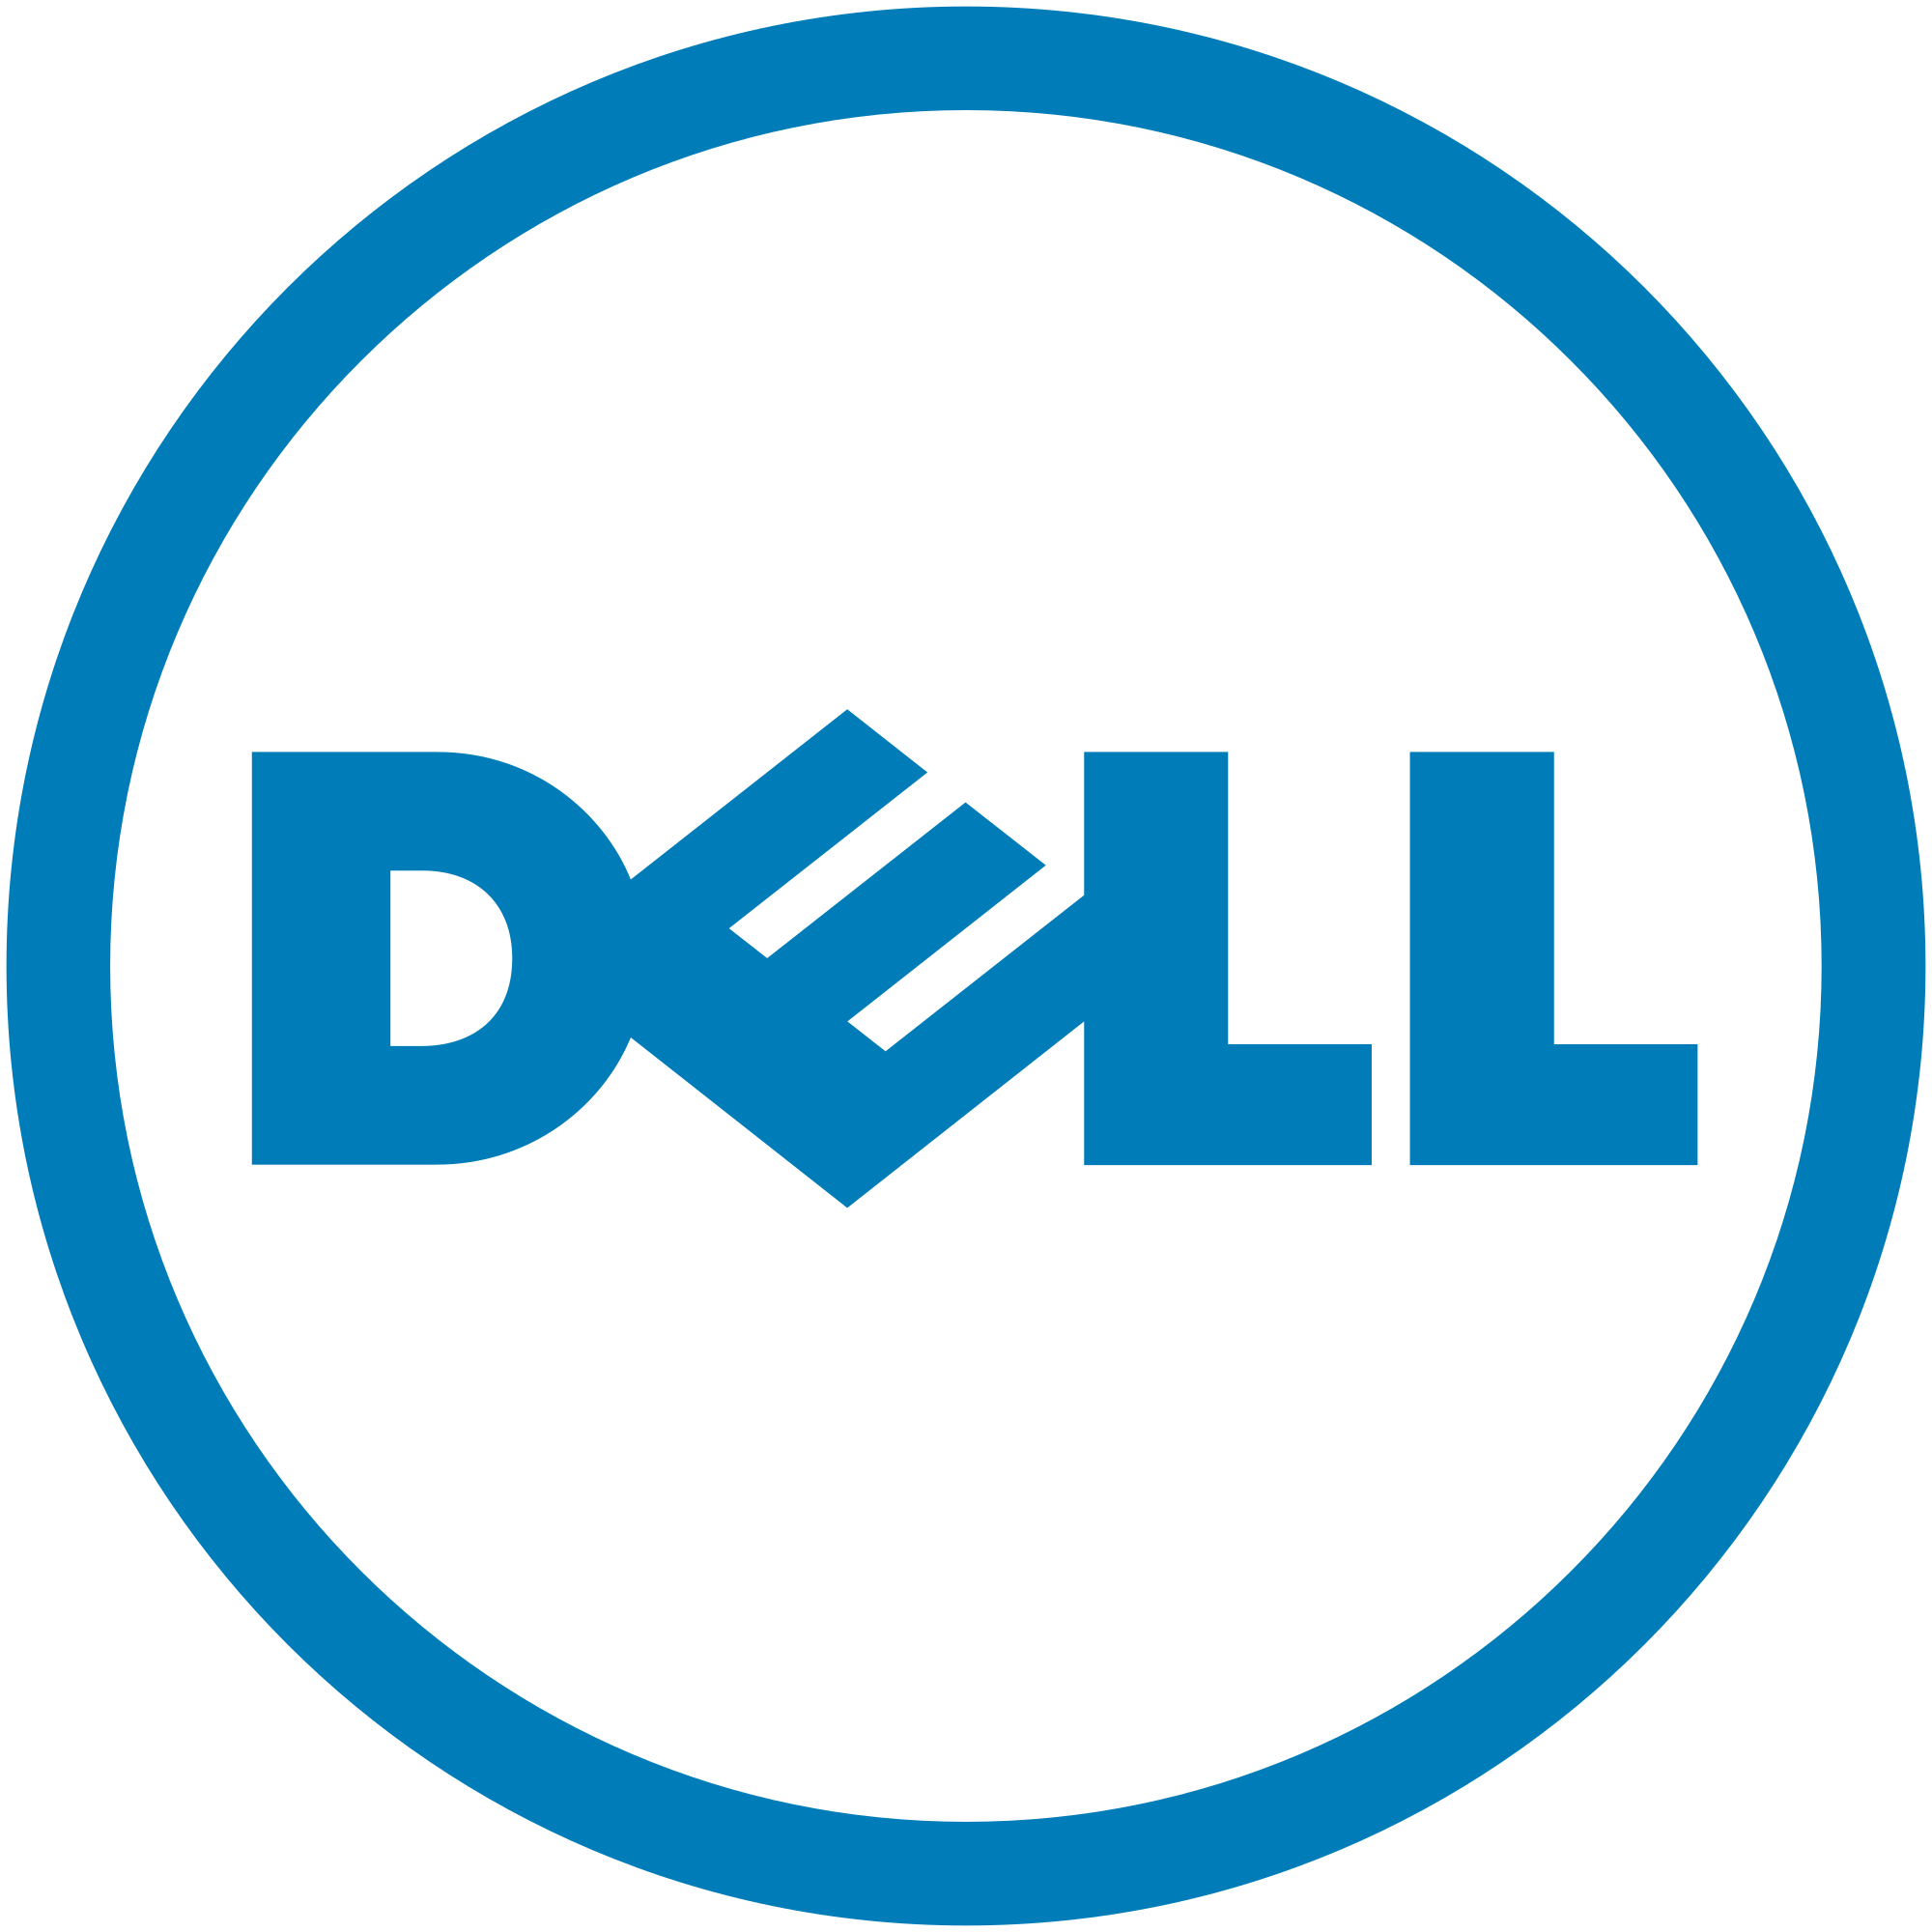 Dell_Logo.svg